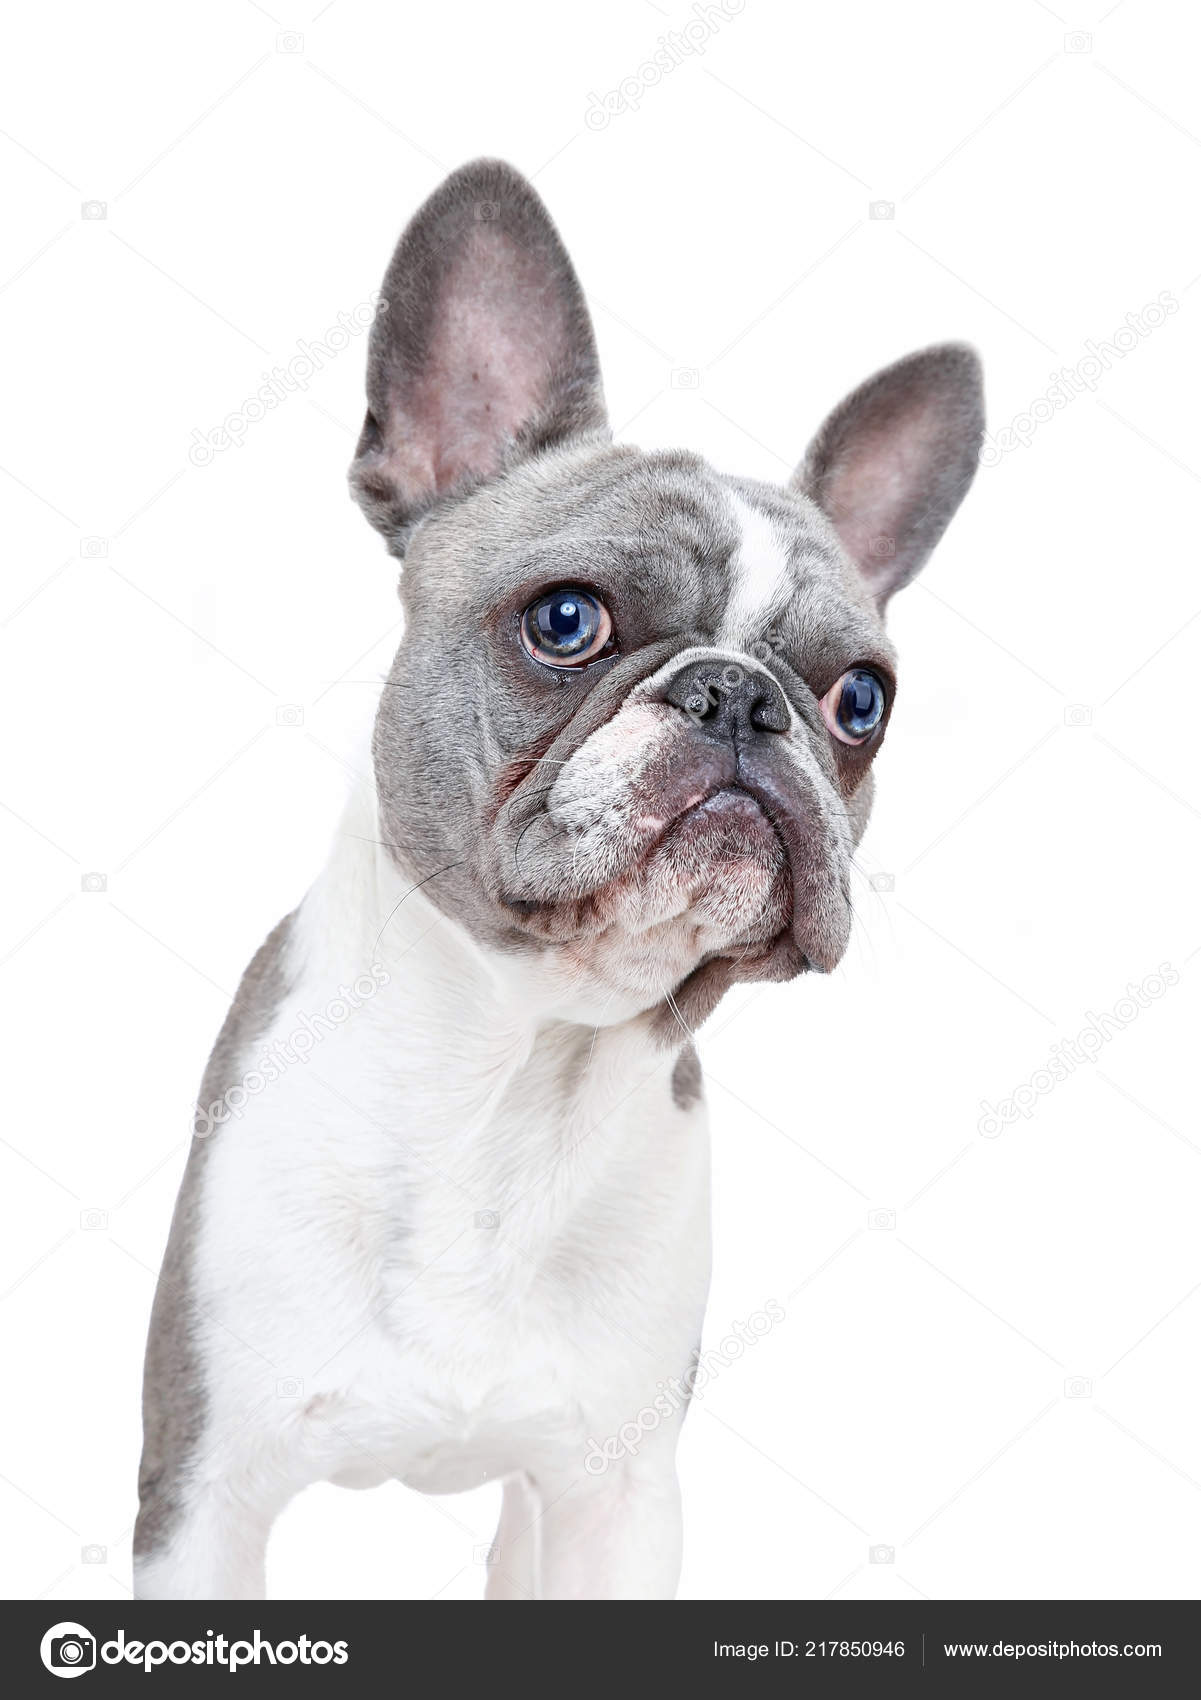 Pictures Google Puppy Cute French Bulldog Puppy Funny Face Isolated White Background Stock Photo C Graphicphoto 217850946